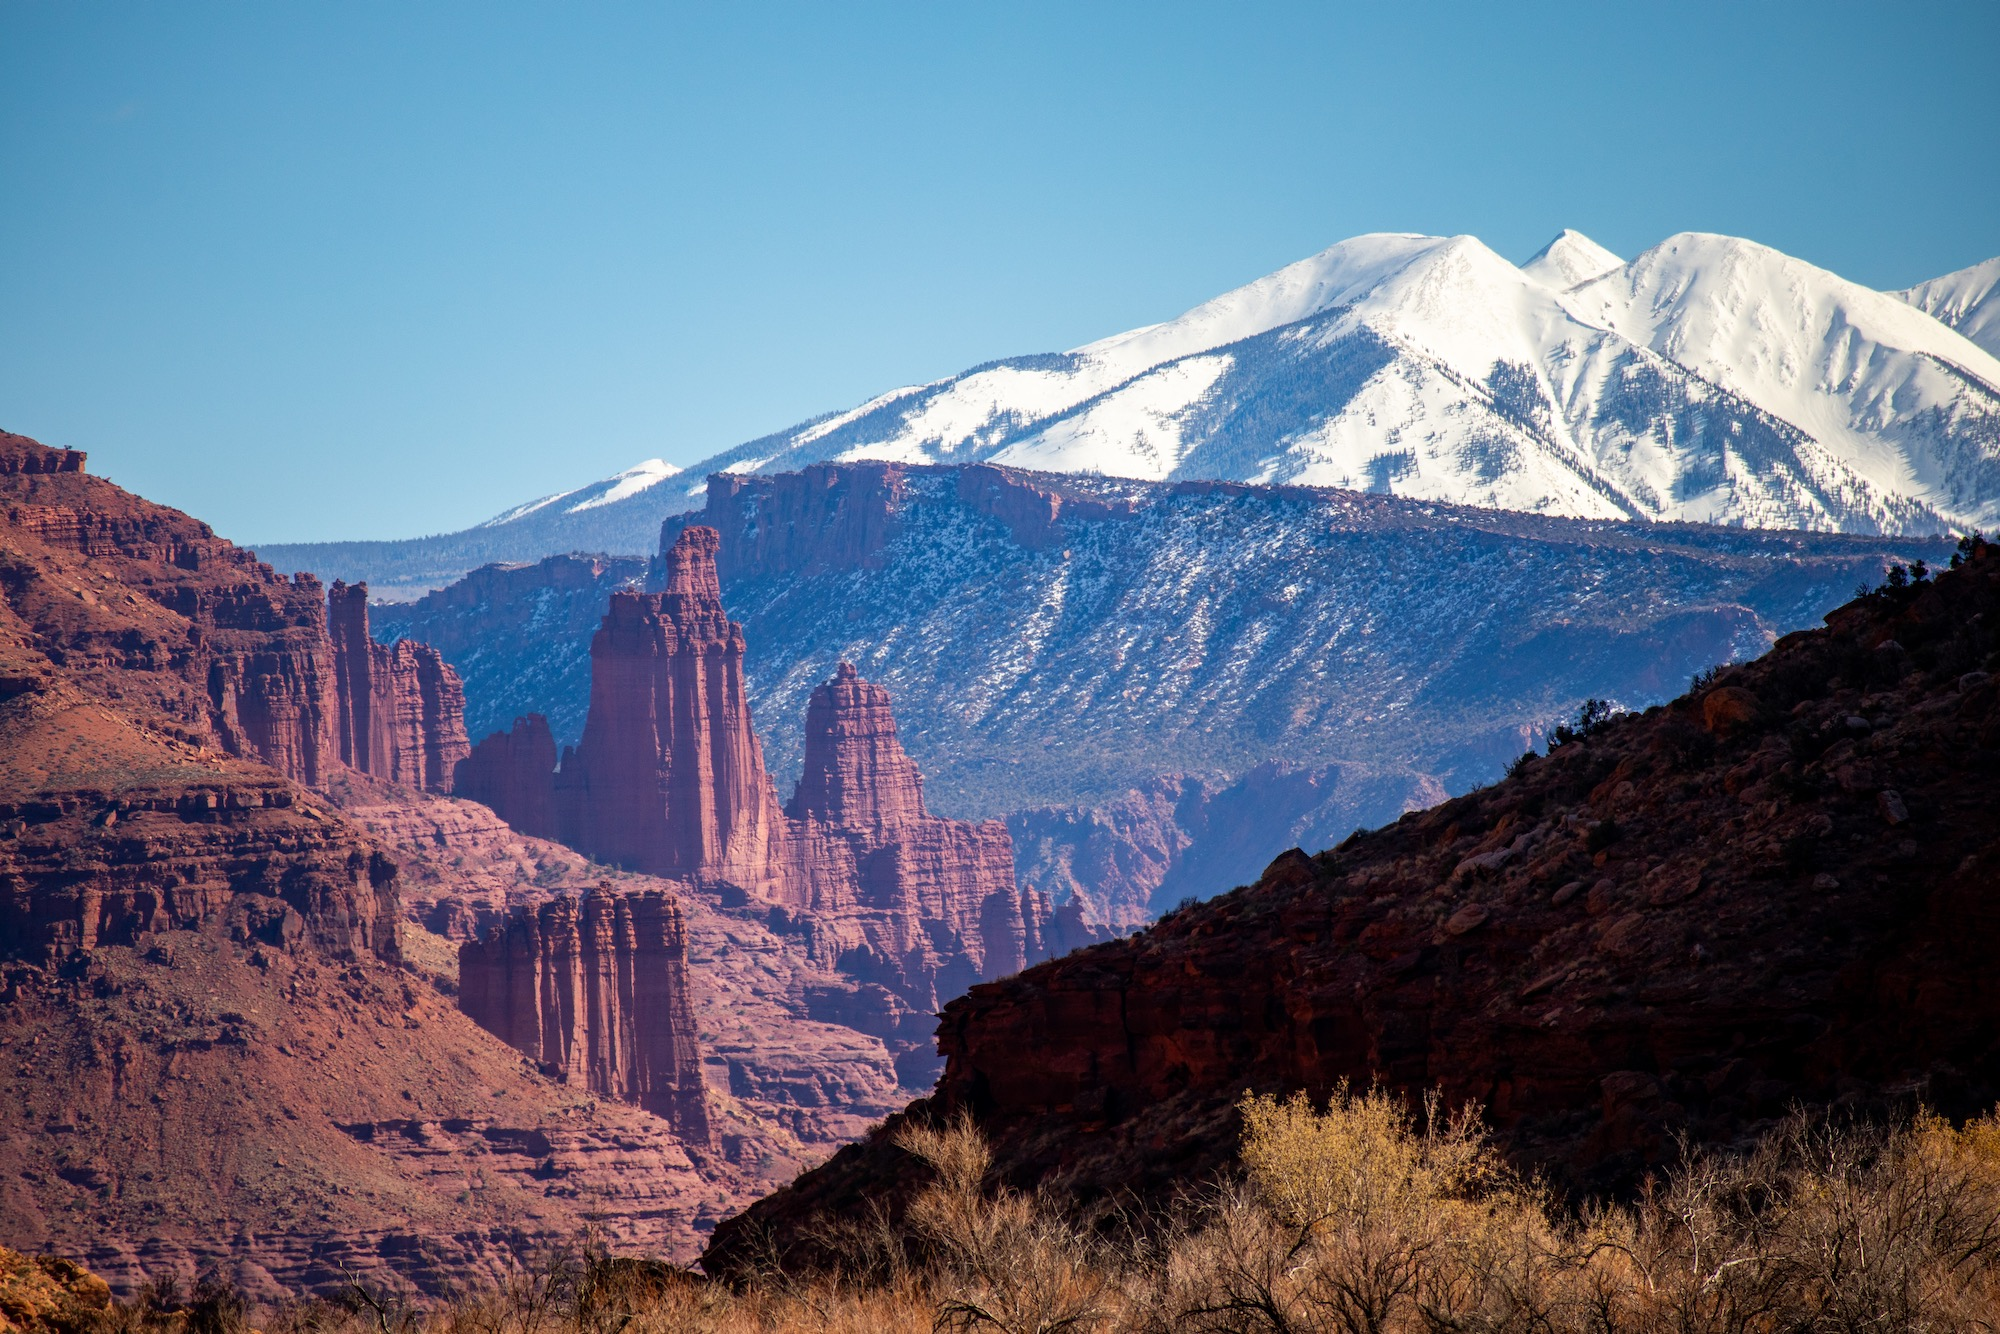 Fisher Towers and the La Sal Mountains viewed from the Utah 128 scenic byway.